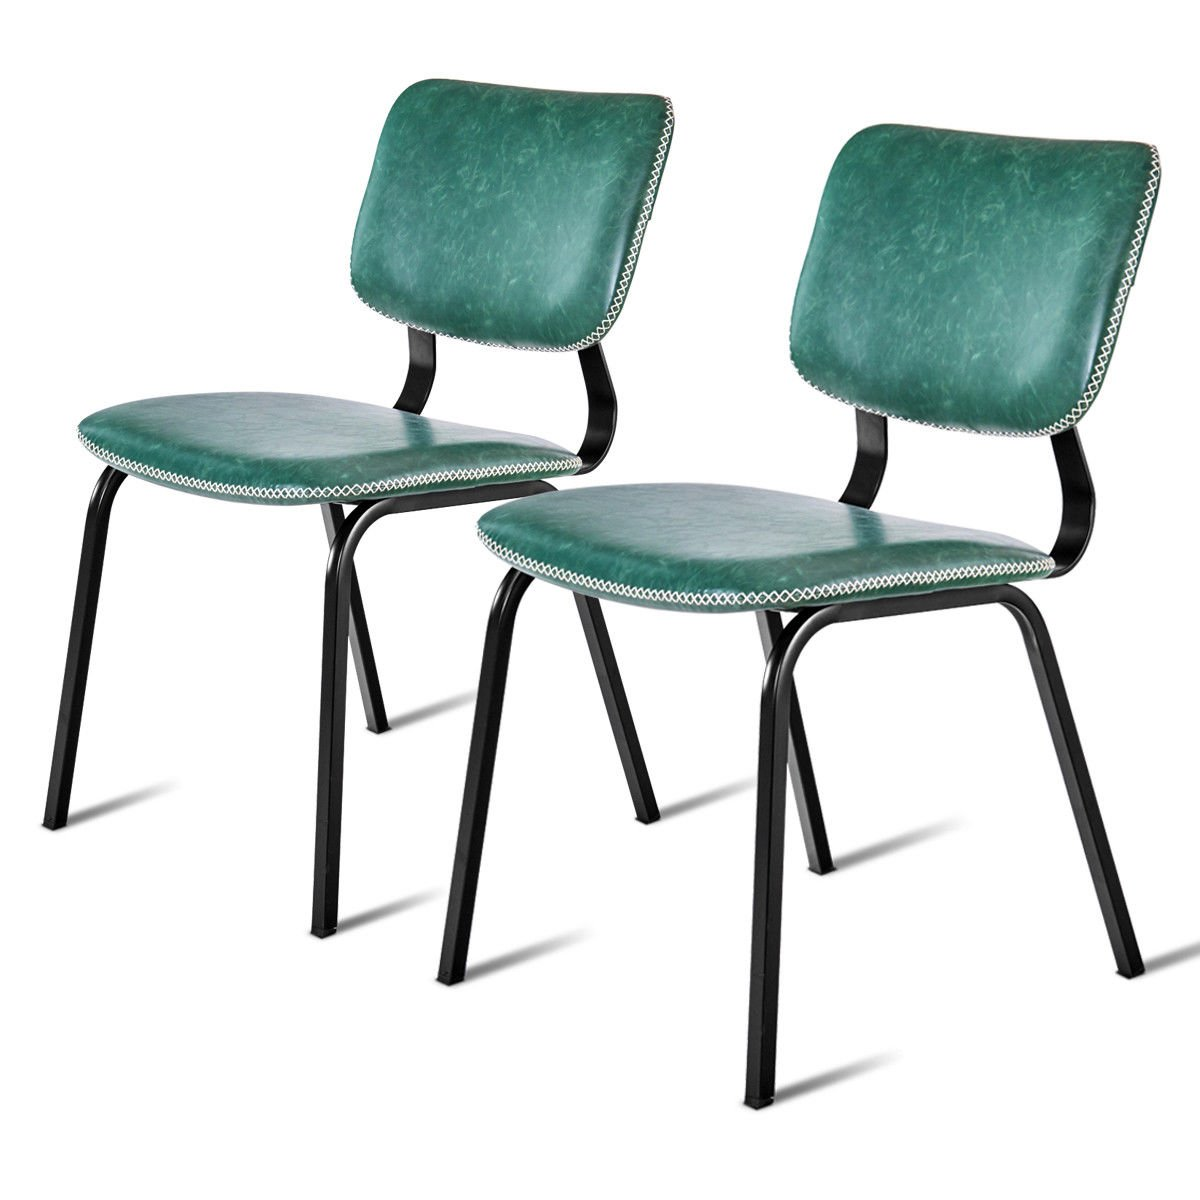 Giantex 2Pcs Dining Chairs Modern Armrchairs PU Leather Home Dining Room Furniture Reception Chairs Guest Side Chairs w Padded Seat Metal Legs, Green